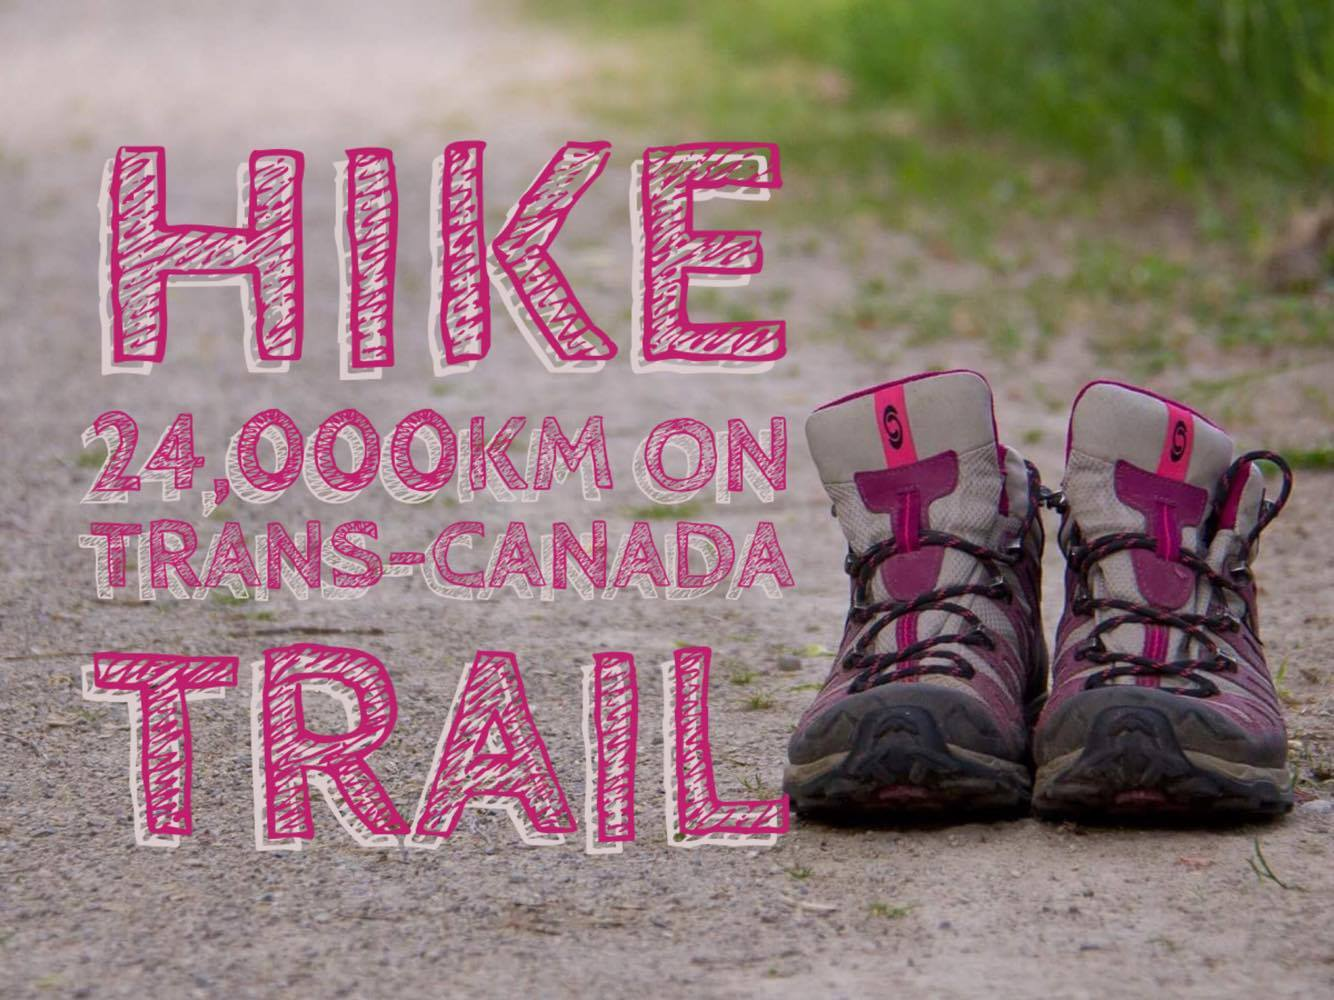 Woman hikes Trans Canada Trail | My Wandering Voyage travel blog